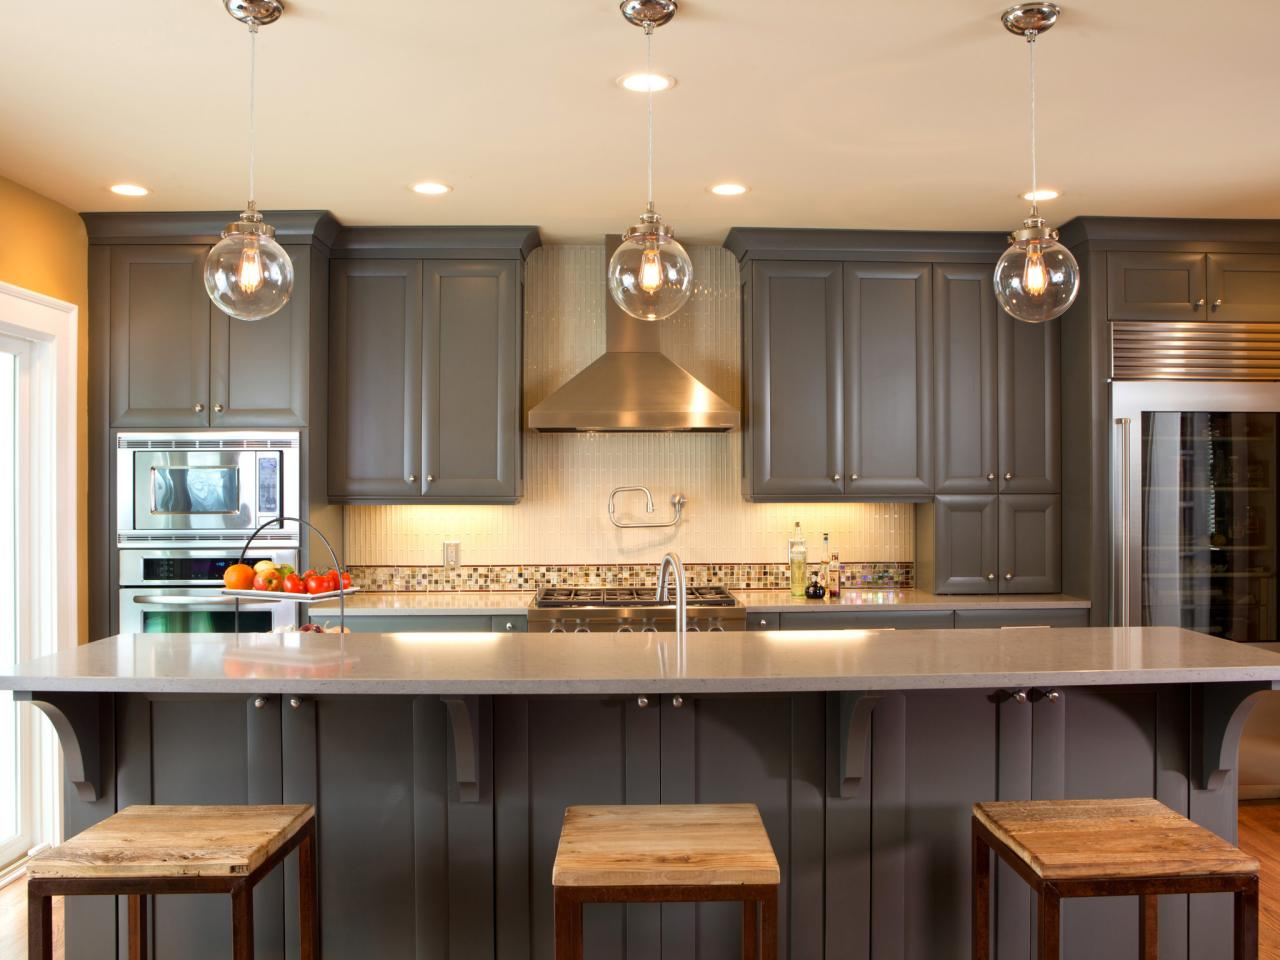 Ideas for painting kitchen cabinets pictures from hgtv Pictures of painted cabinets